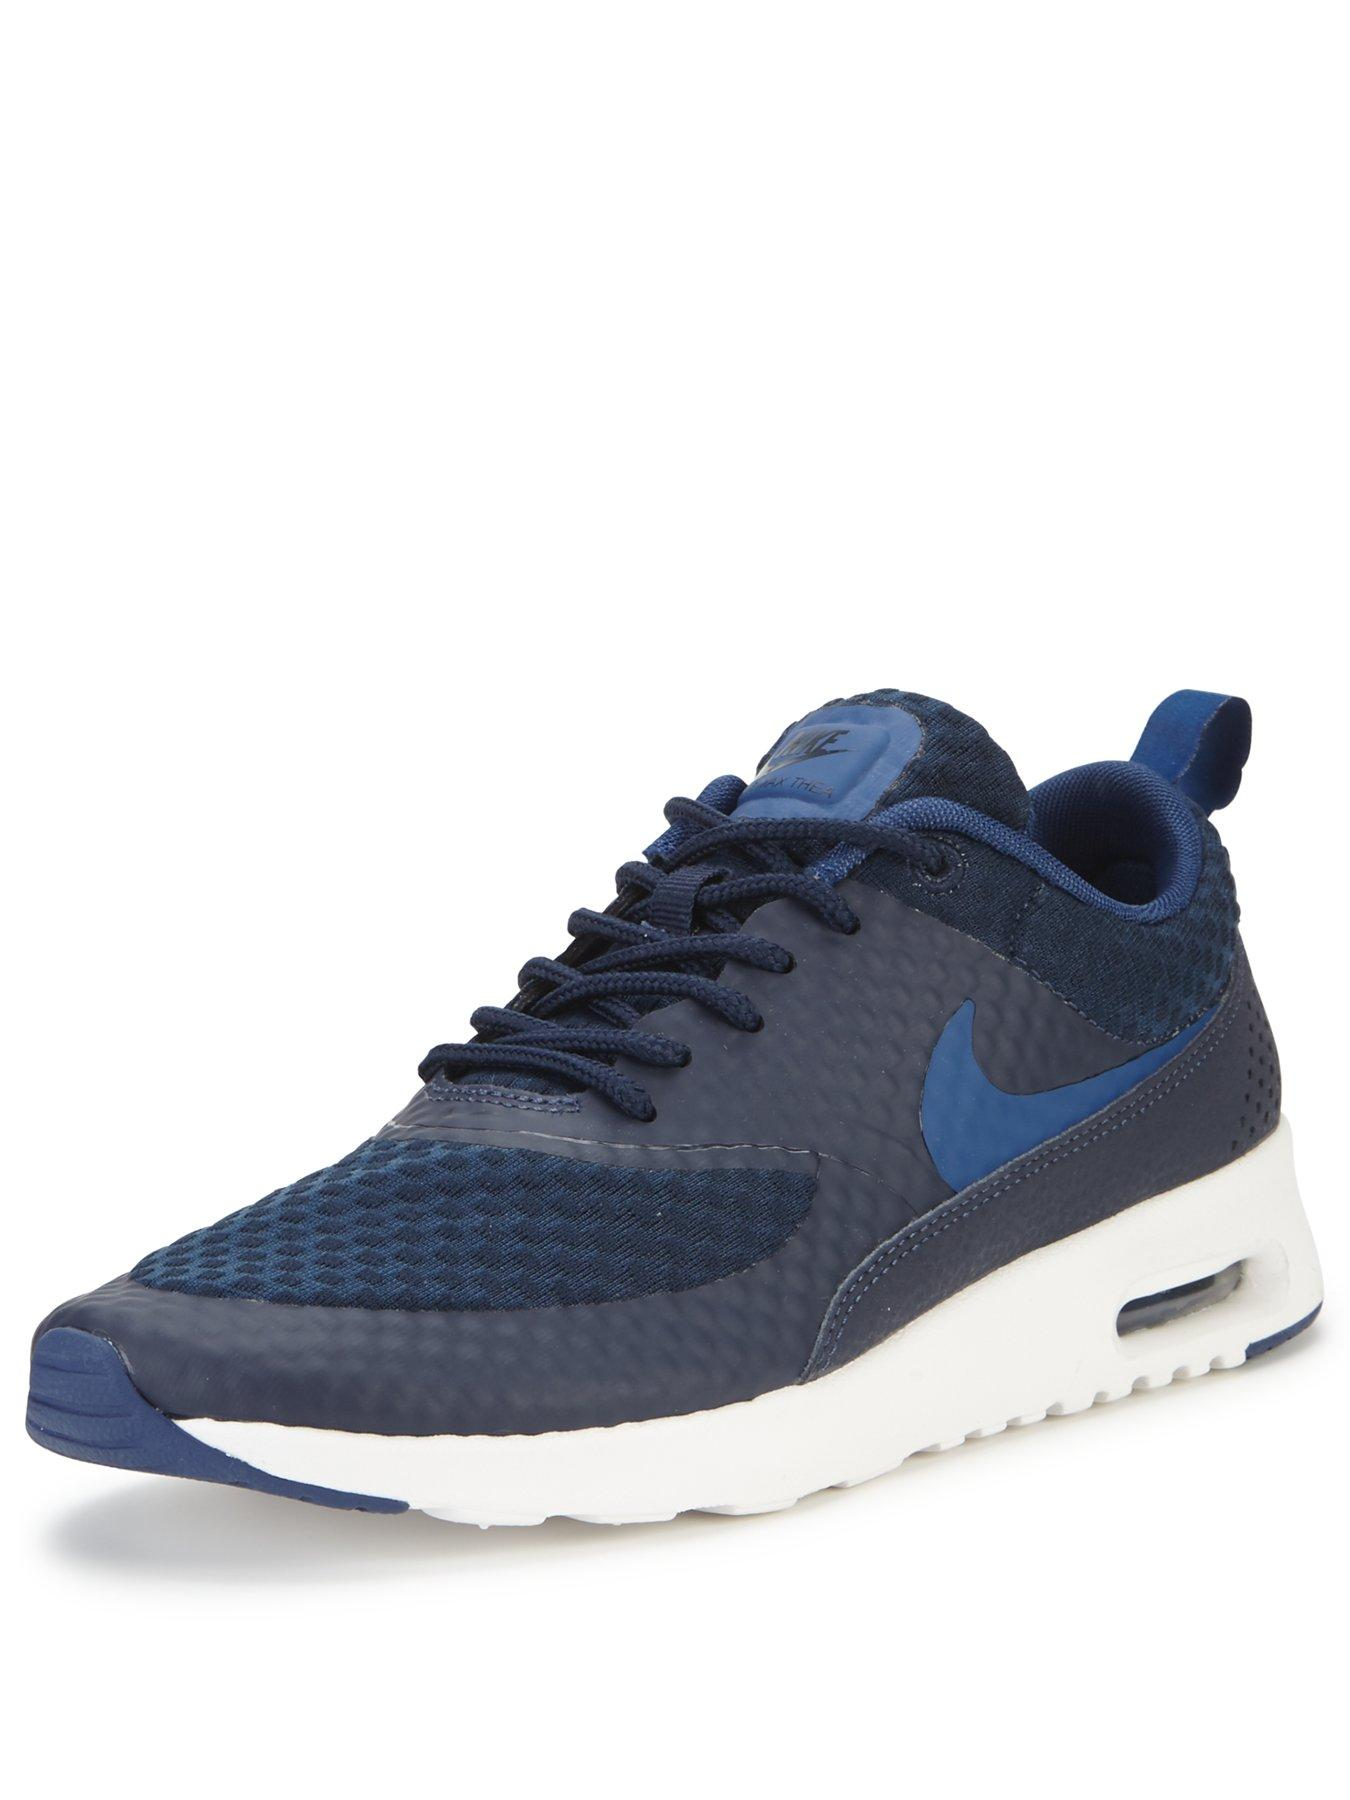 nike air max thea navy. Black Bedroom Furniture Sets. Home Design Ideas